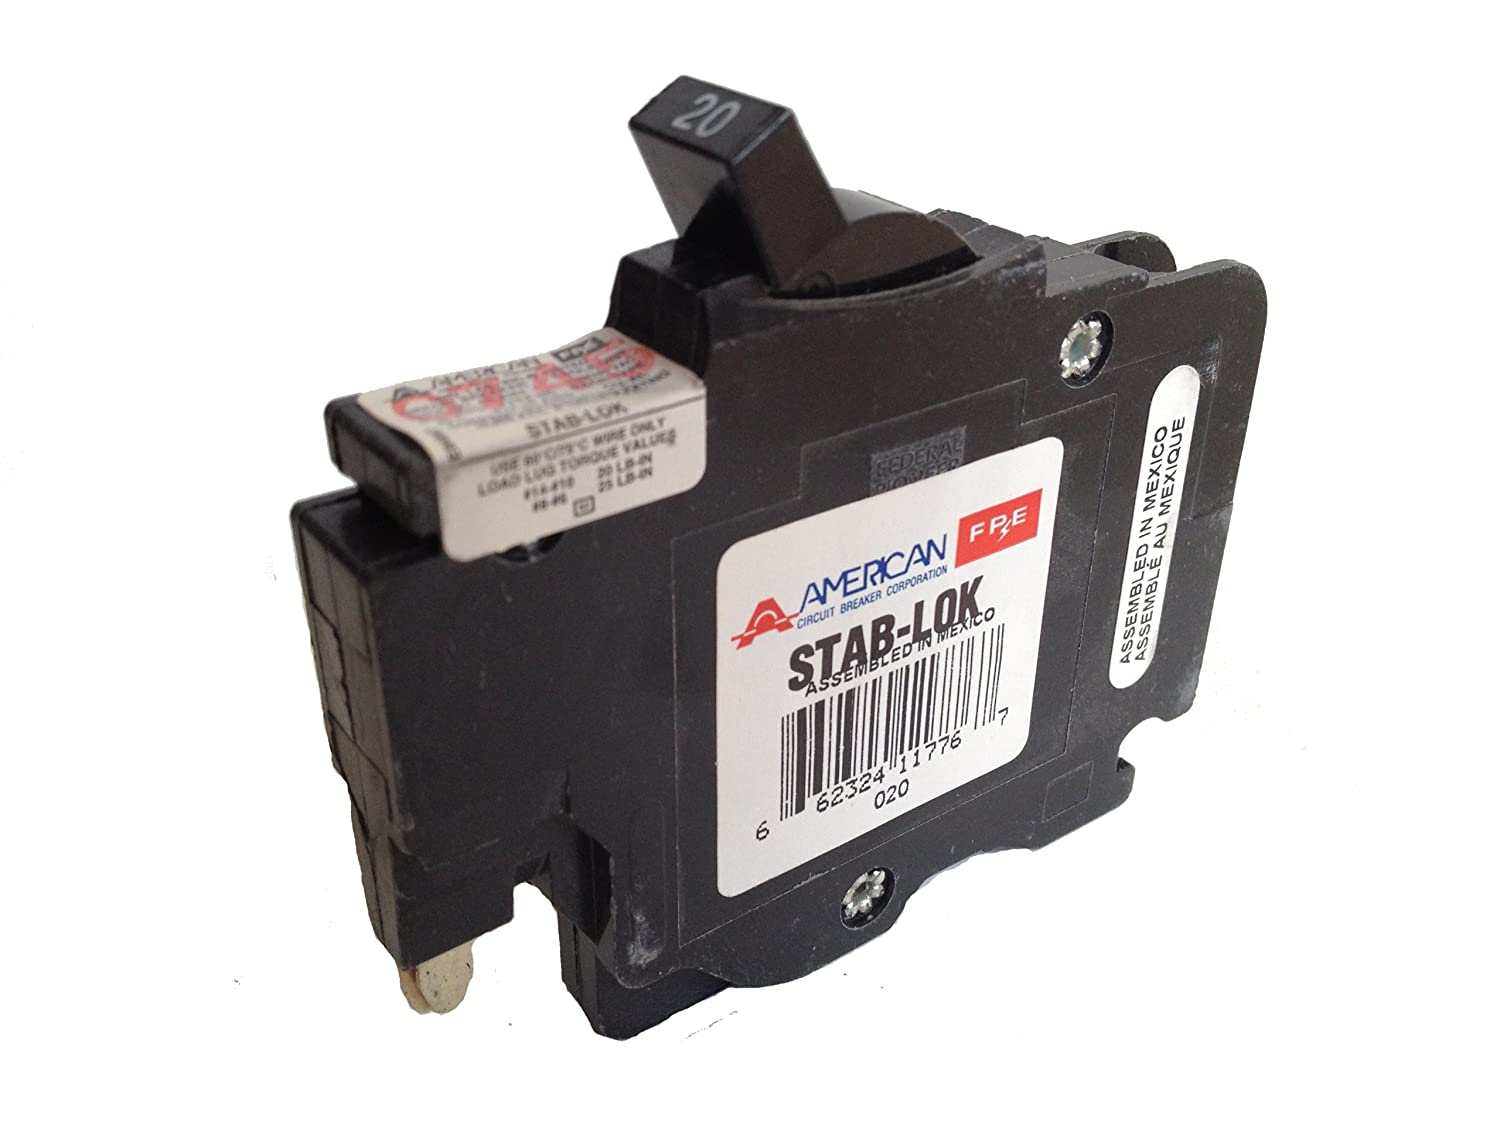 American Federal Pacific Circuit Breaker 1 Pole 20 Amp Thin Series Install Or Replace All Types Of Breakers Magnetic